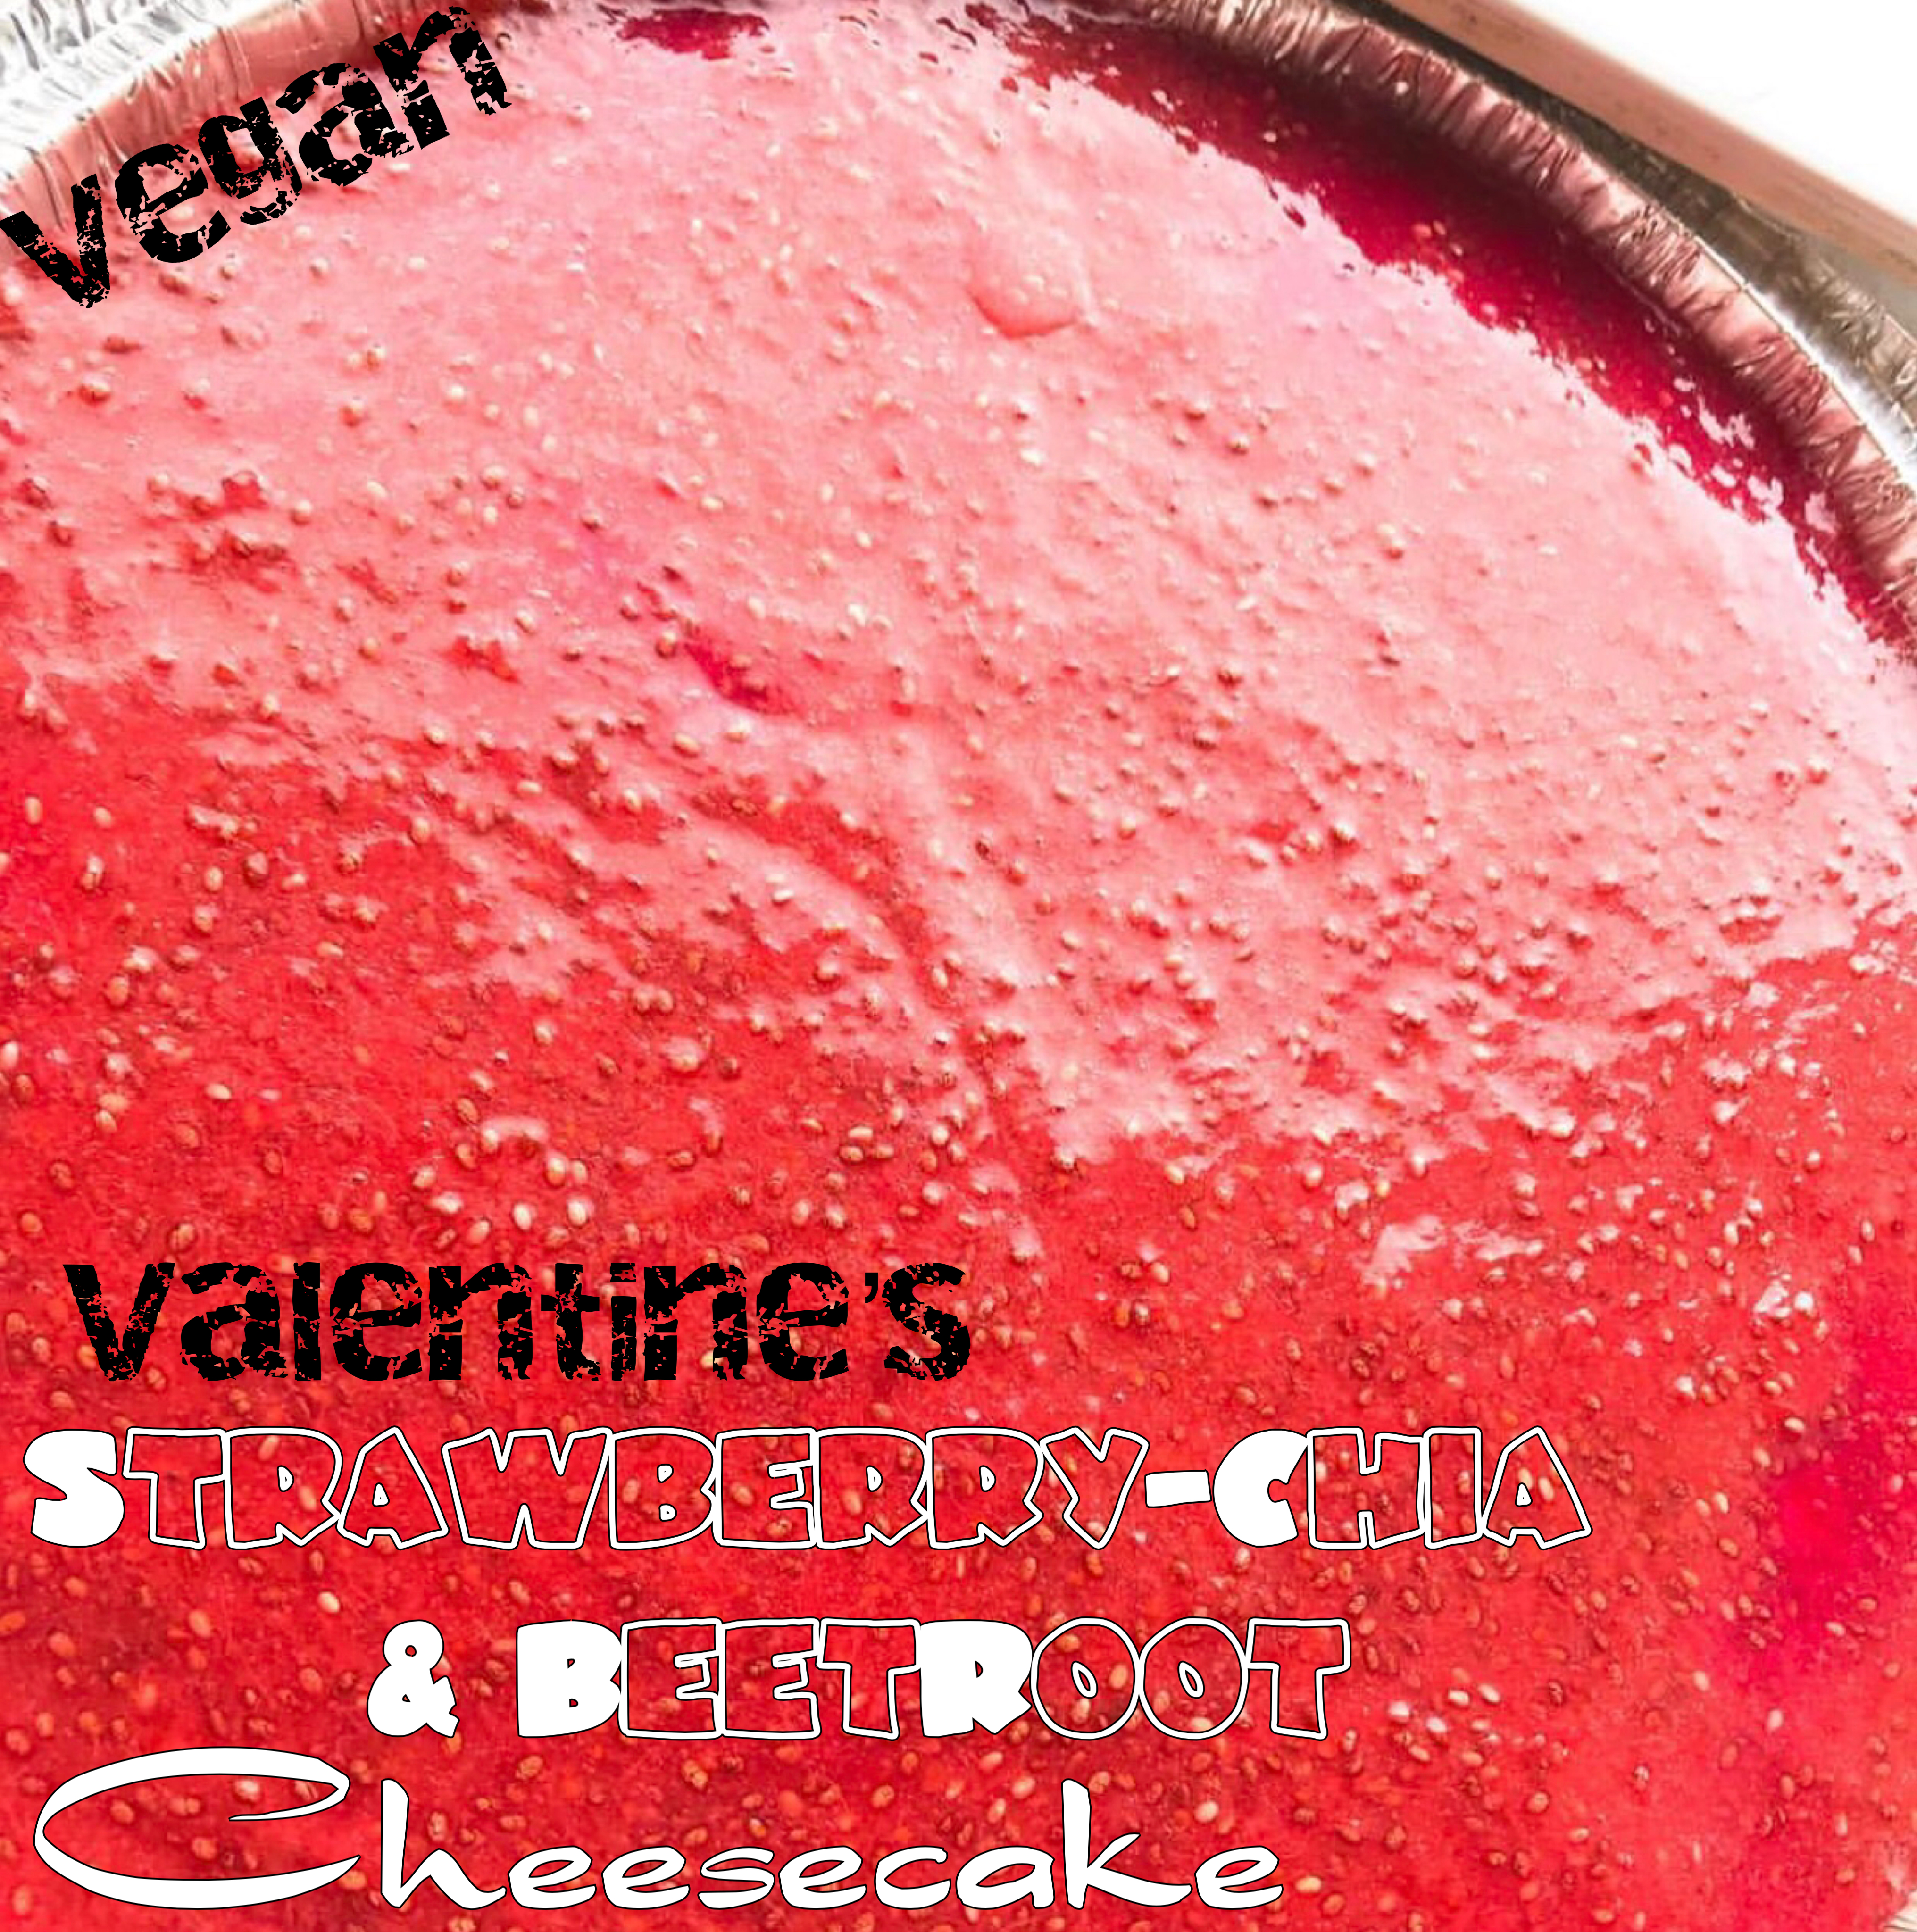 Vegan Valentine's Strawberry-Chia & Beetroot Cheesecake